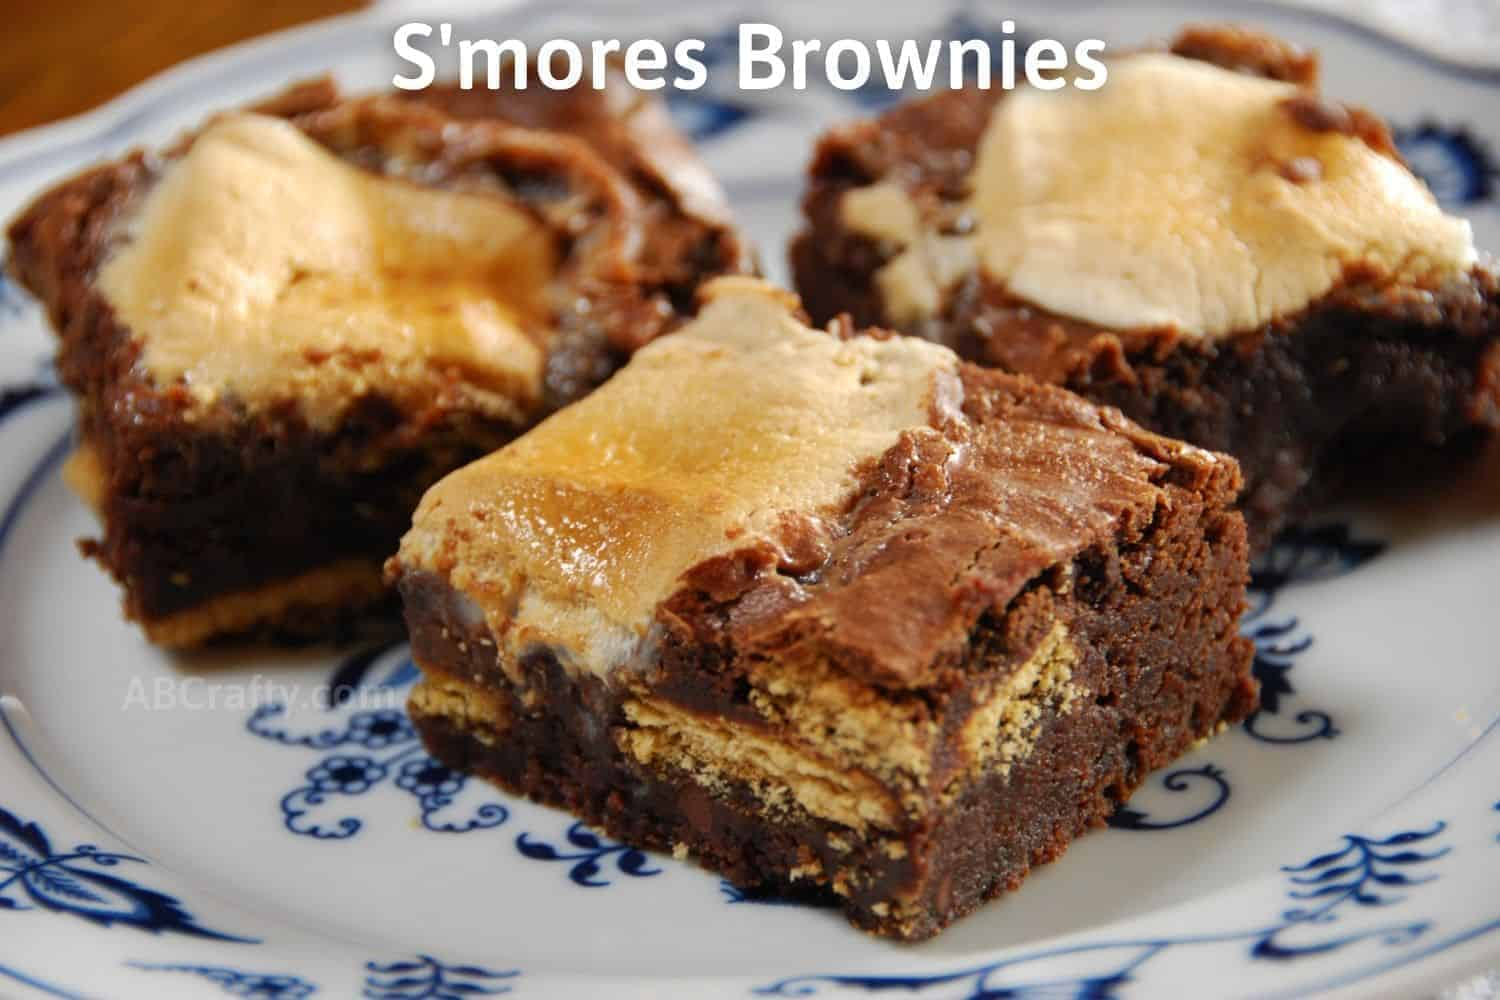 Finished smores brownies on ceramic plate